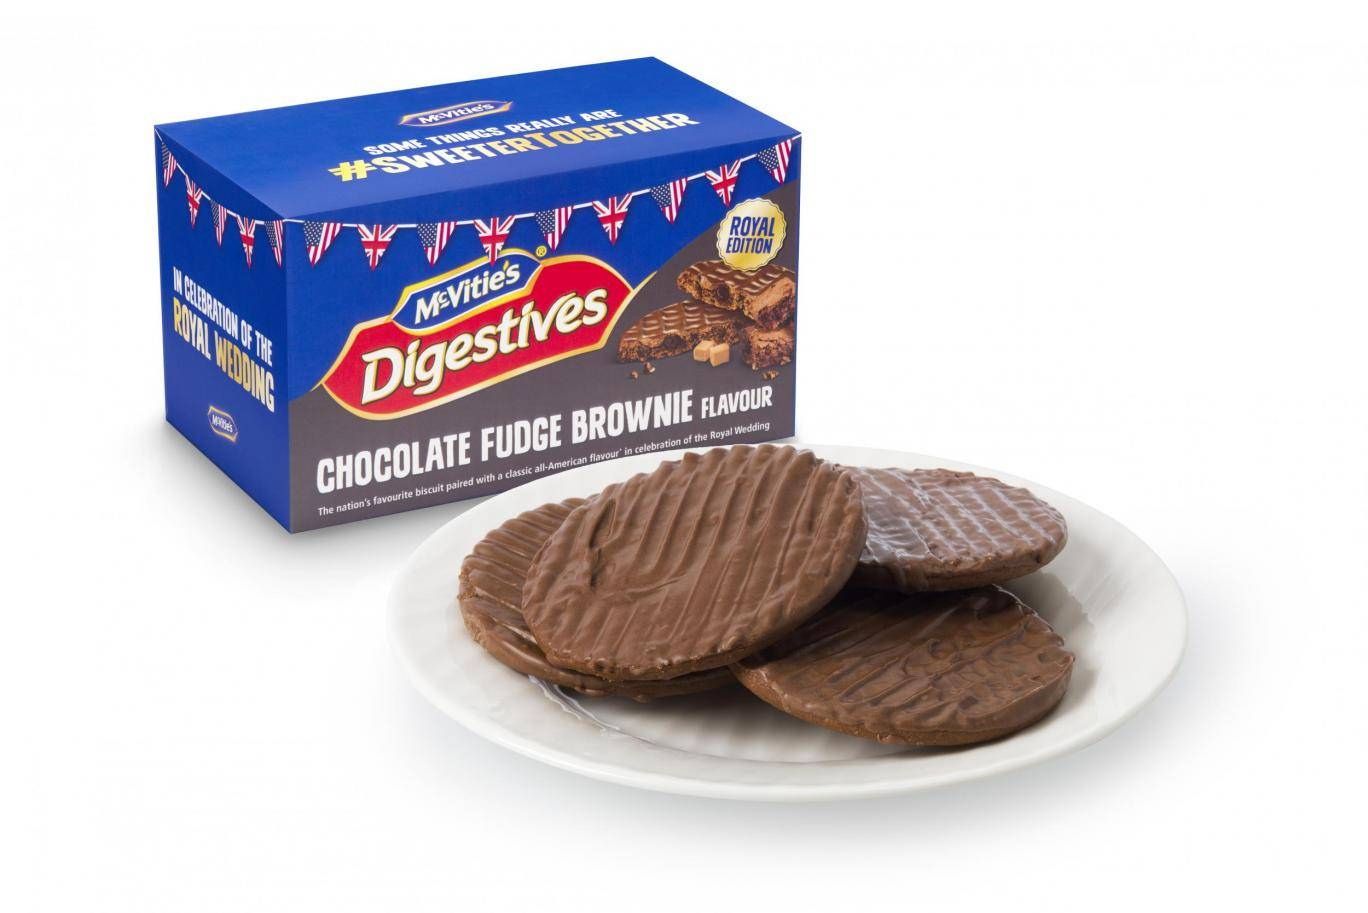 Chocolate digestives Royal edition